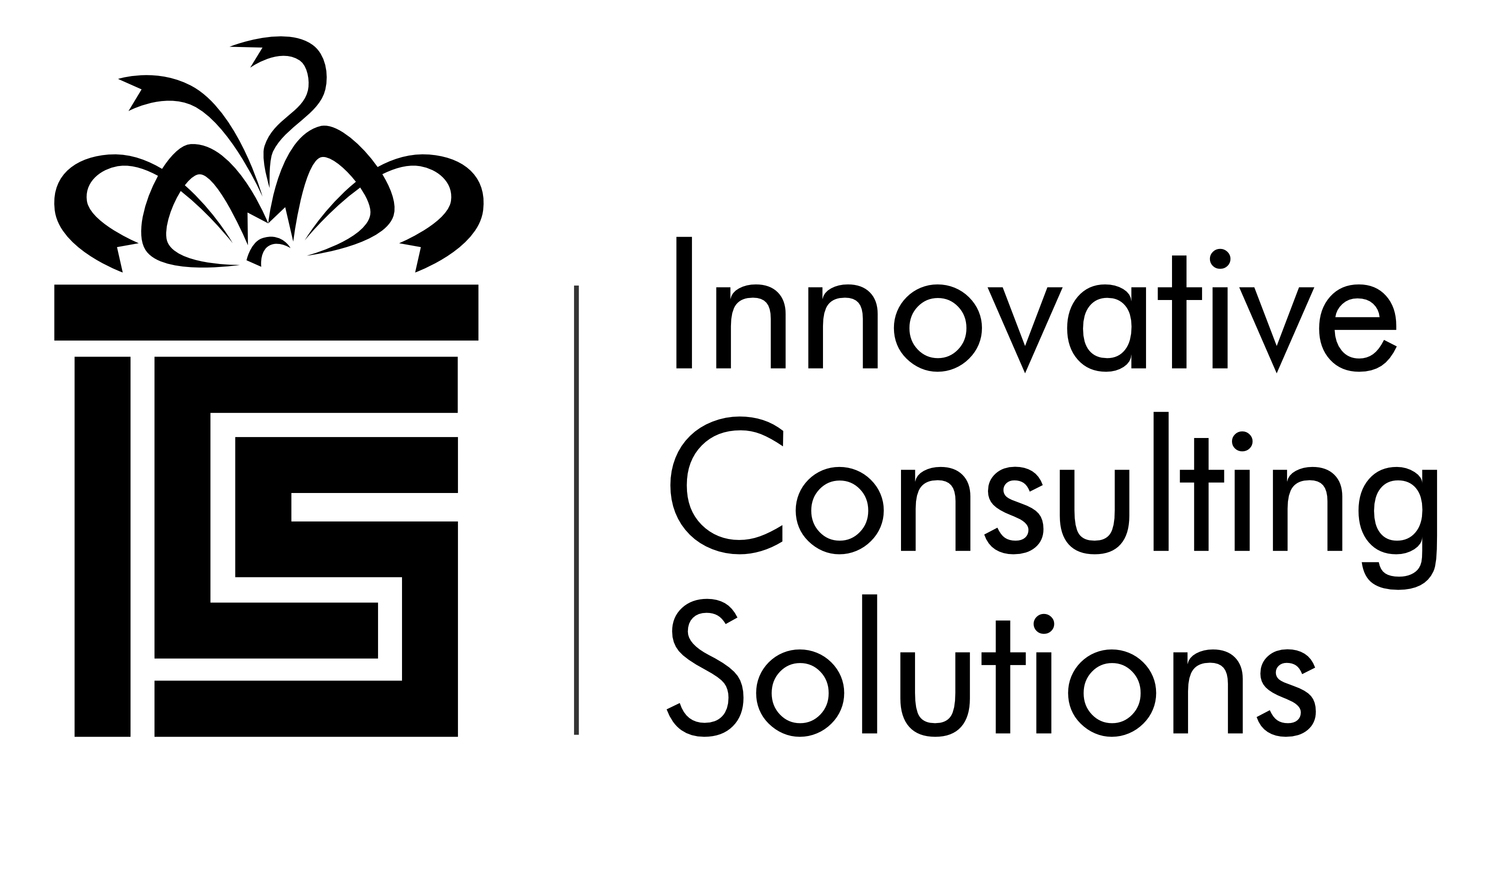 Innovative Consulting Solutions